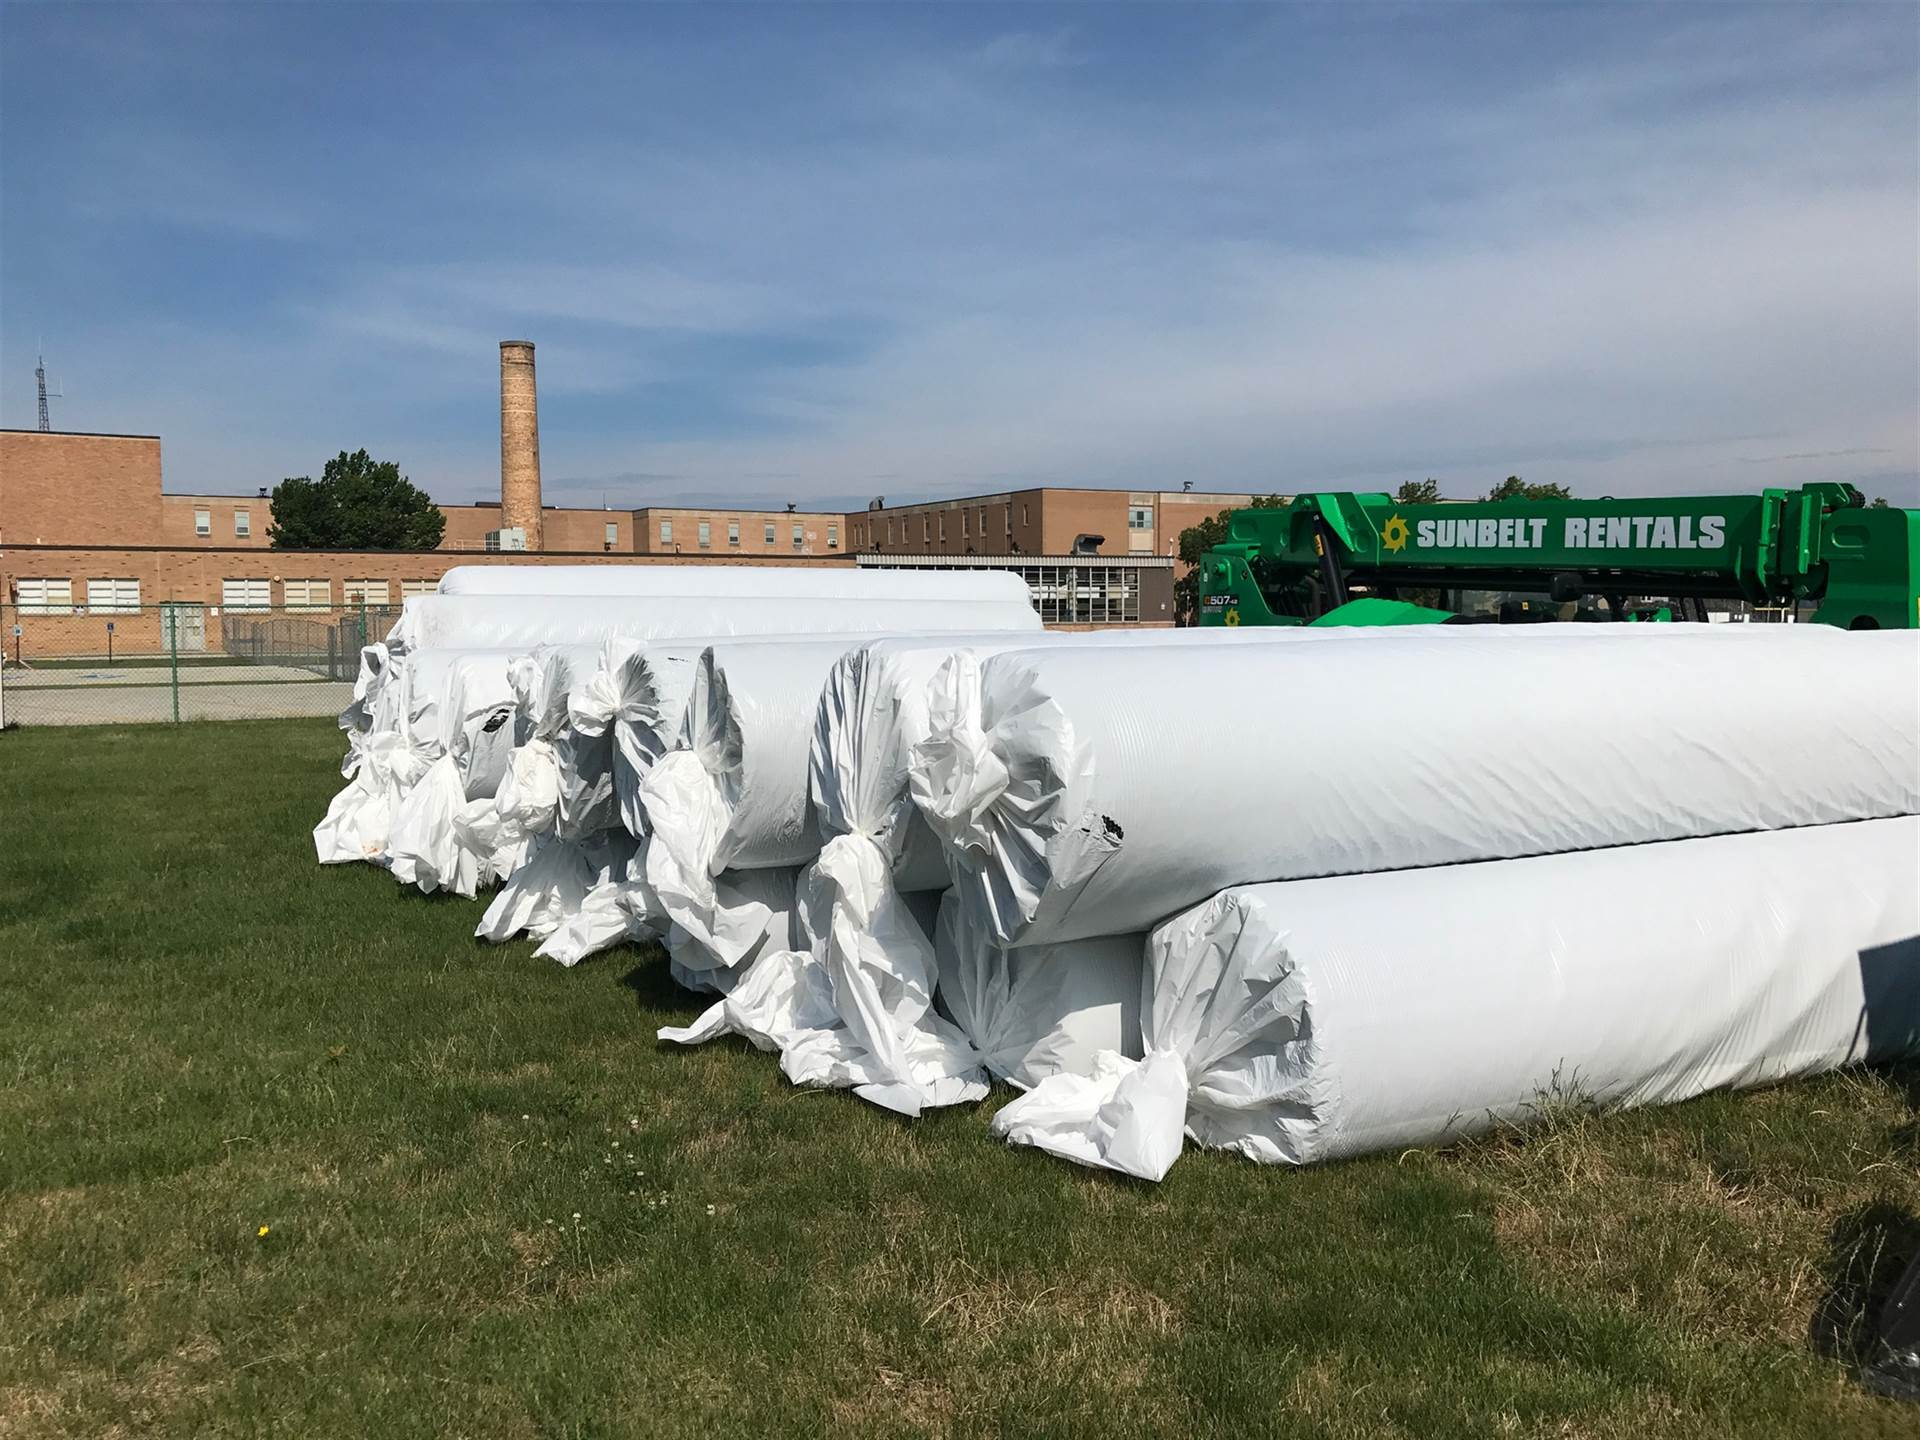 Field turf for the middle school field (July 20, 2017)